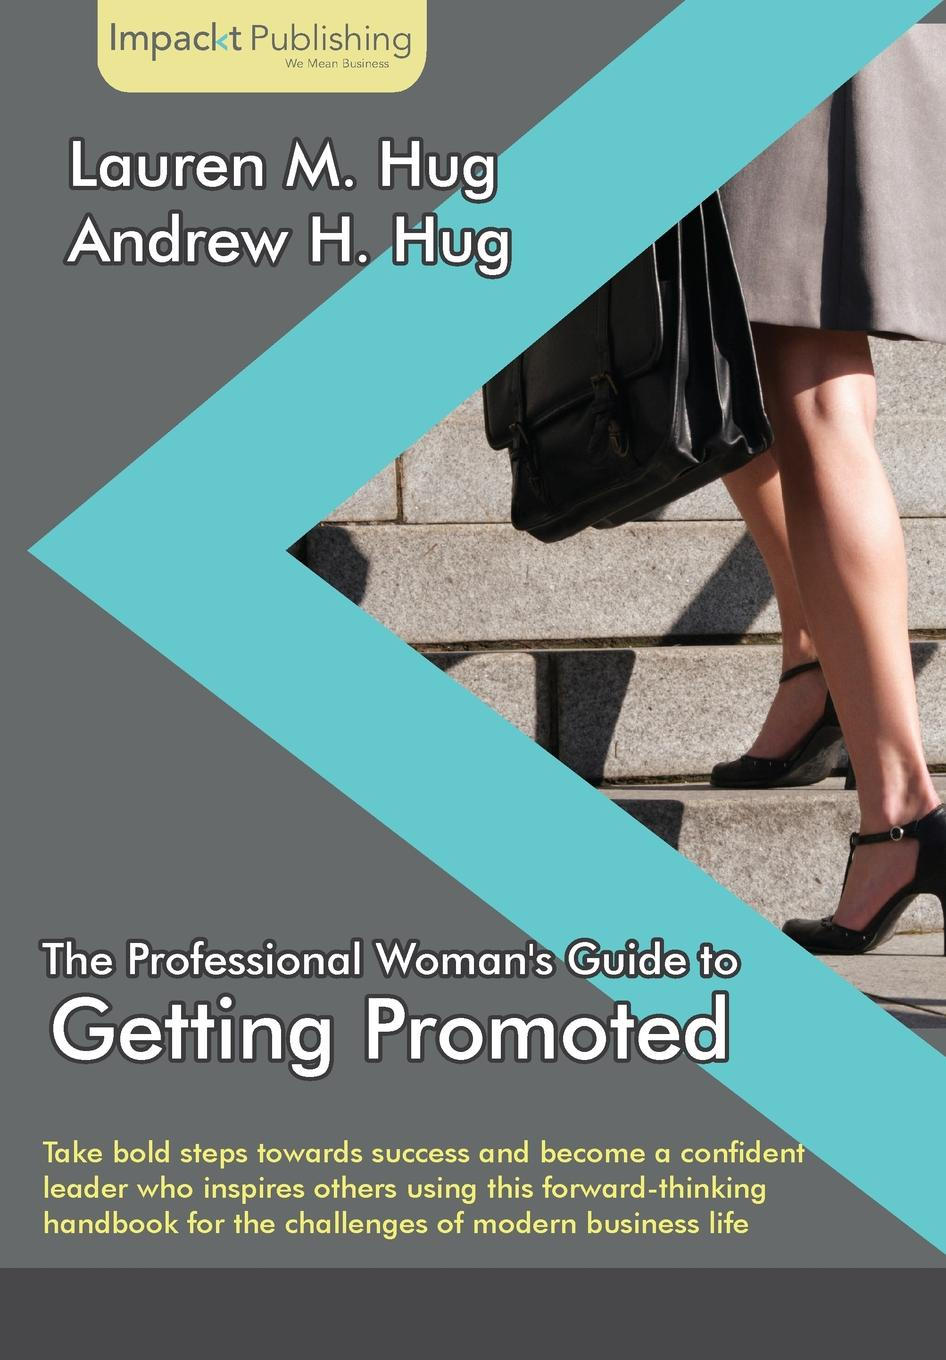 Lauren M. Hug, Andrew H. Hug The Professional Woman's Guide to Getting Promoted lois brenner robert stein getting your share a woman s guide to successful divorce strategies